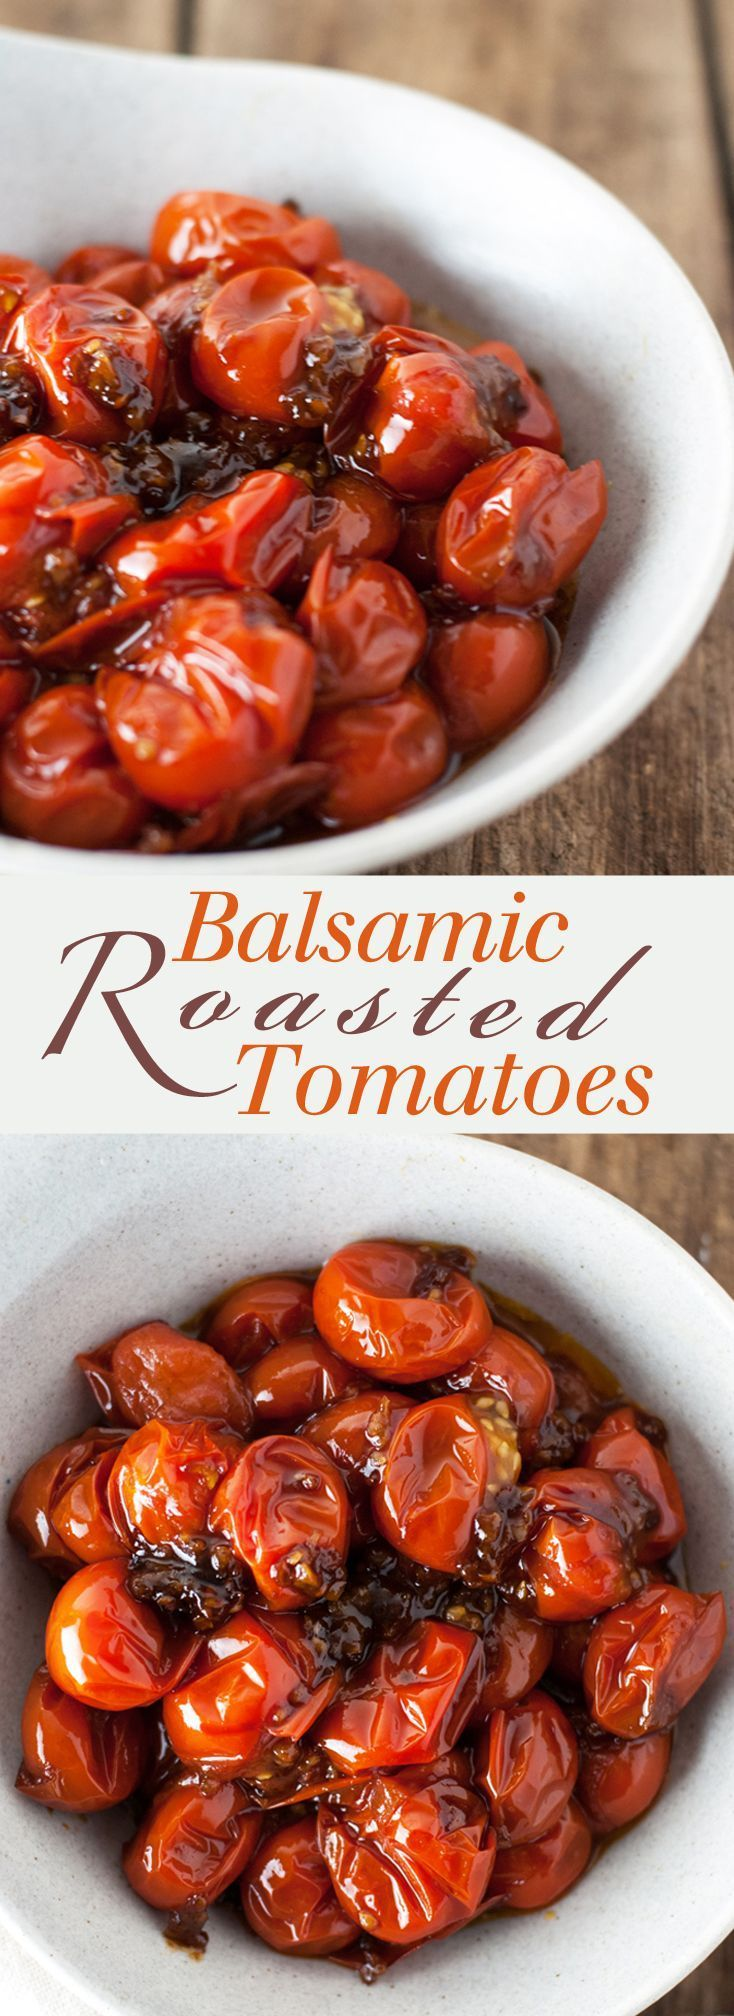 Garlic and Balsamic Grape Tomatoes - Slightly sweet and totally savory, these are one of my favorite foods! Full recipe at theliveinkitchen.com